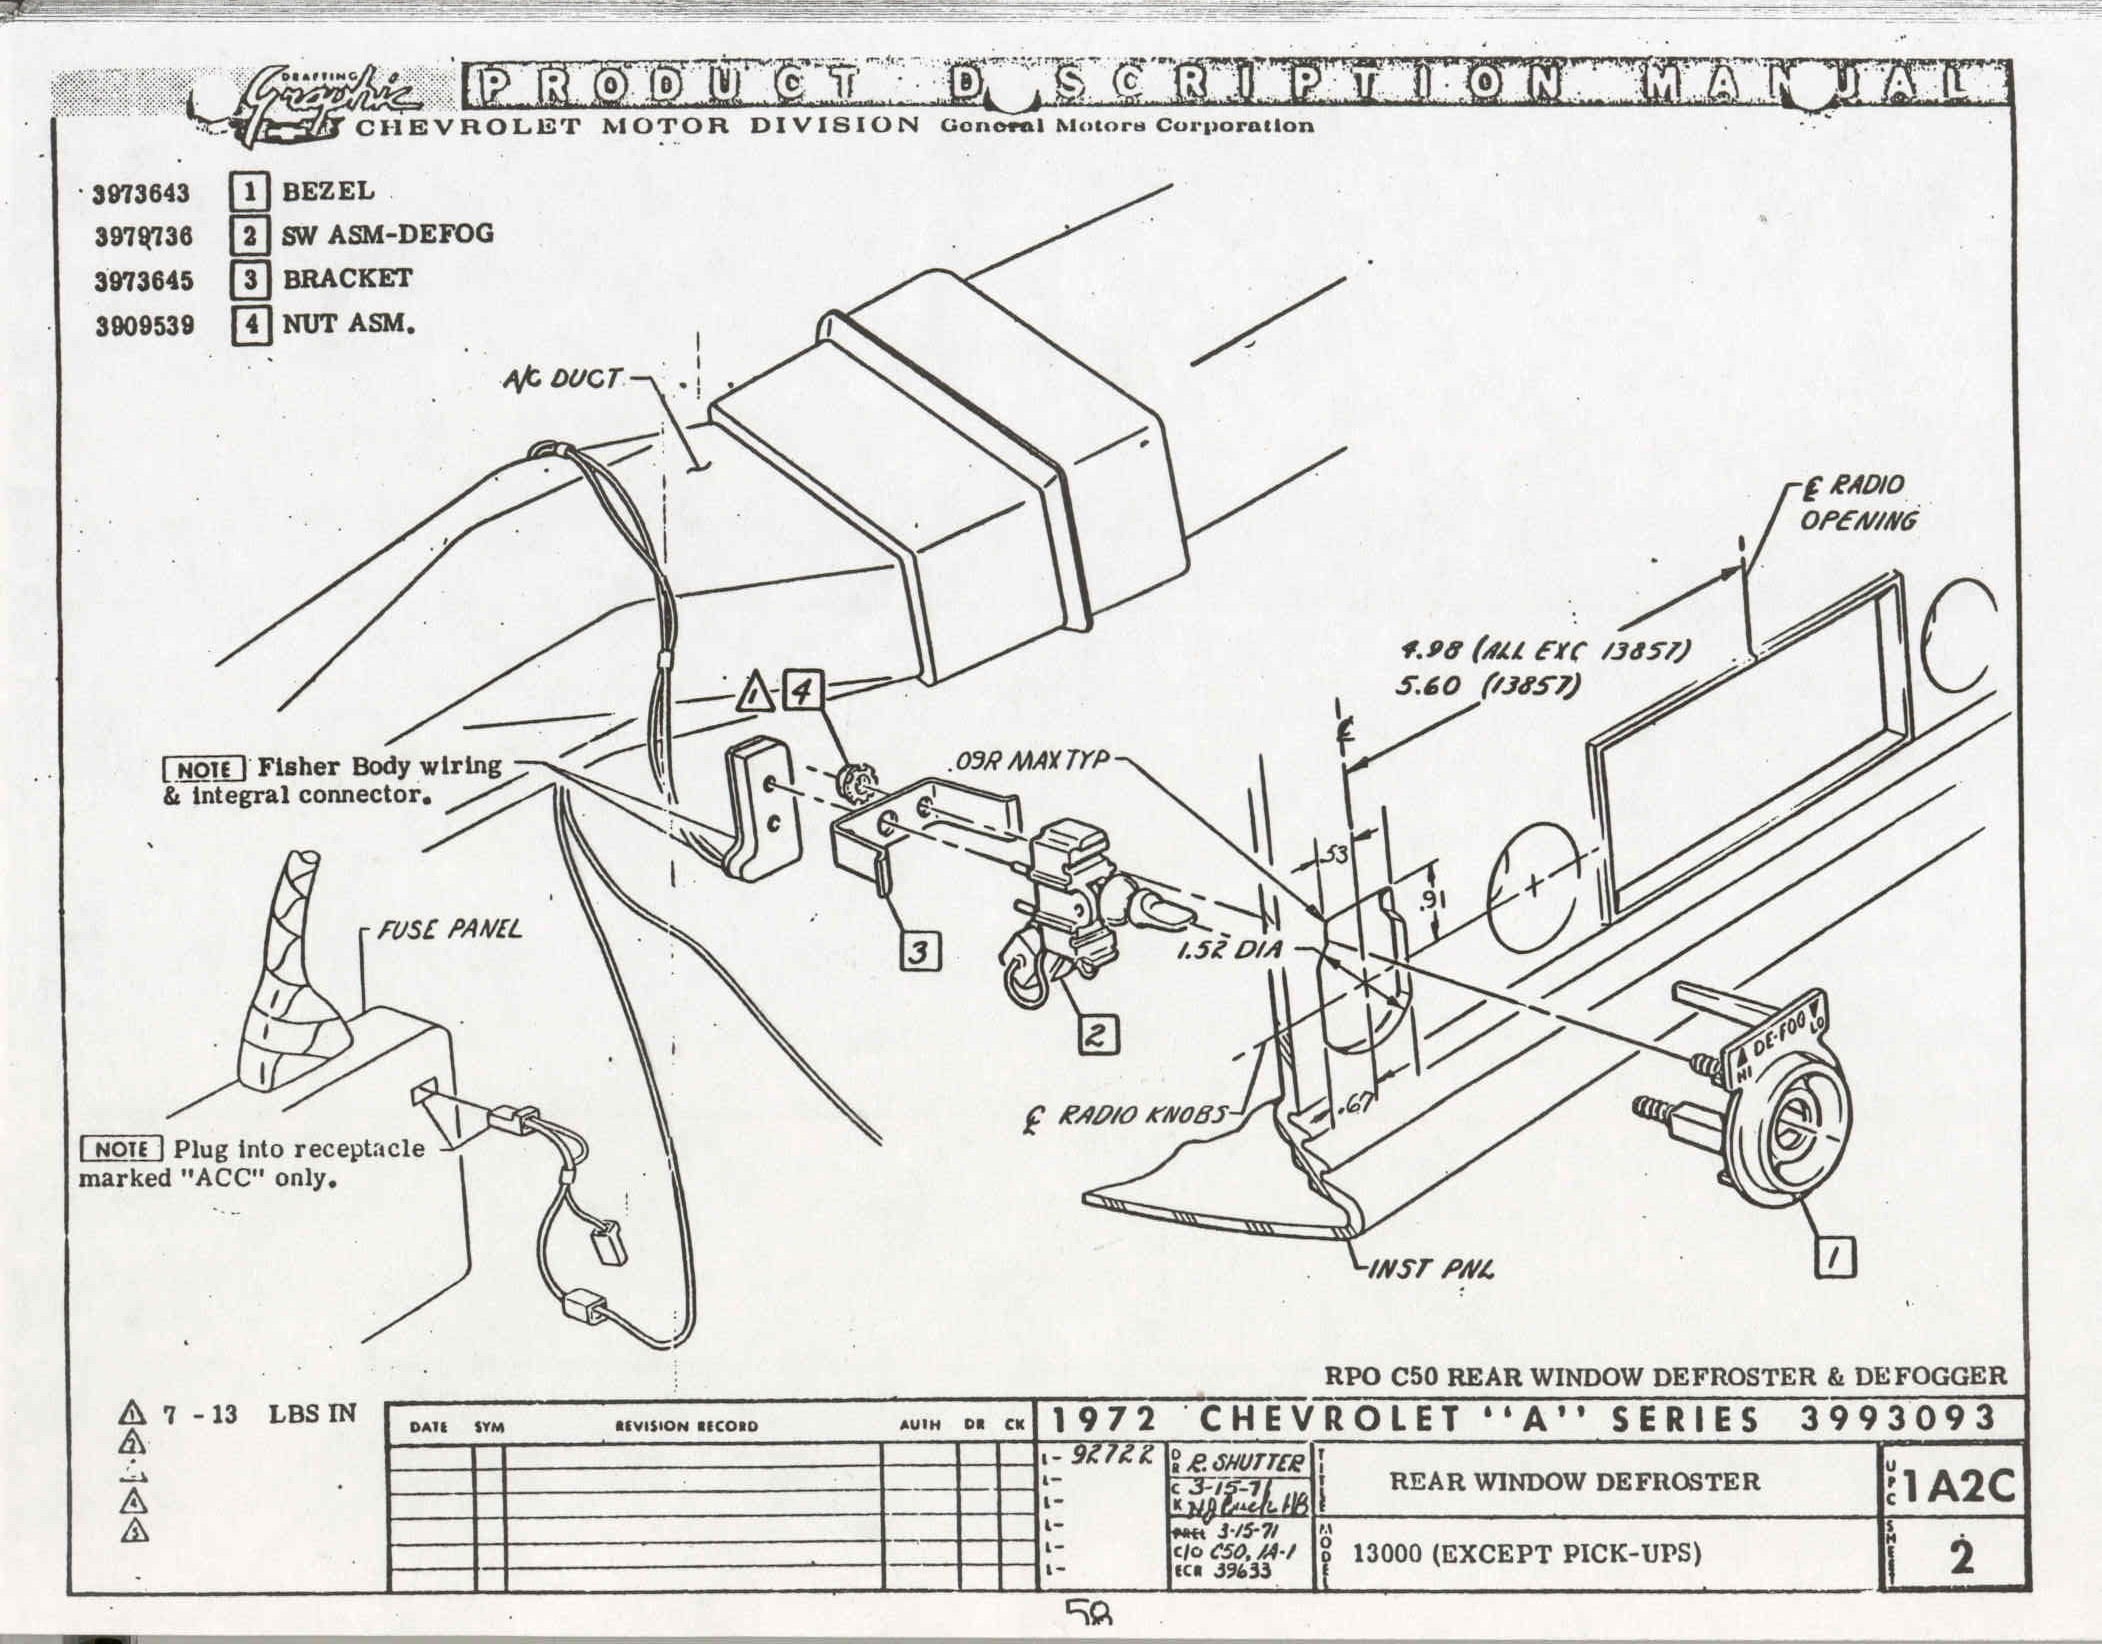 72 chevelle starter wire diagram schematic diagram72 chevelle wiring schematic wiring diagram1972 corvette starter wire wiring diagram database72 nova wiring diagram wiring